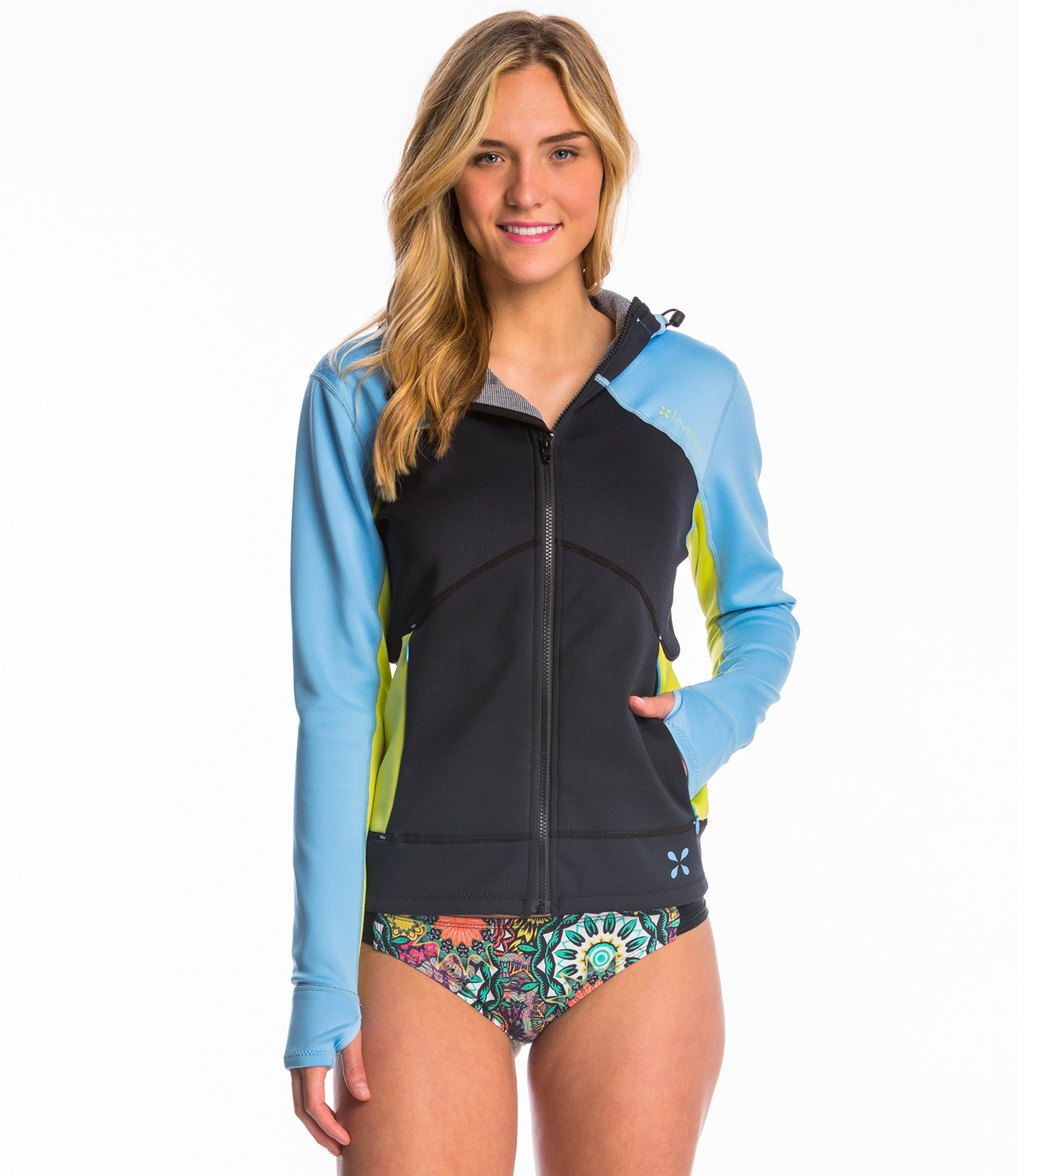 d3fc3f474a6a Level Six Women s 0.5MM Sombrio Neoprene SUP Jacket at SwimOutlet.com - Free  Shipping